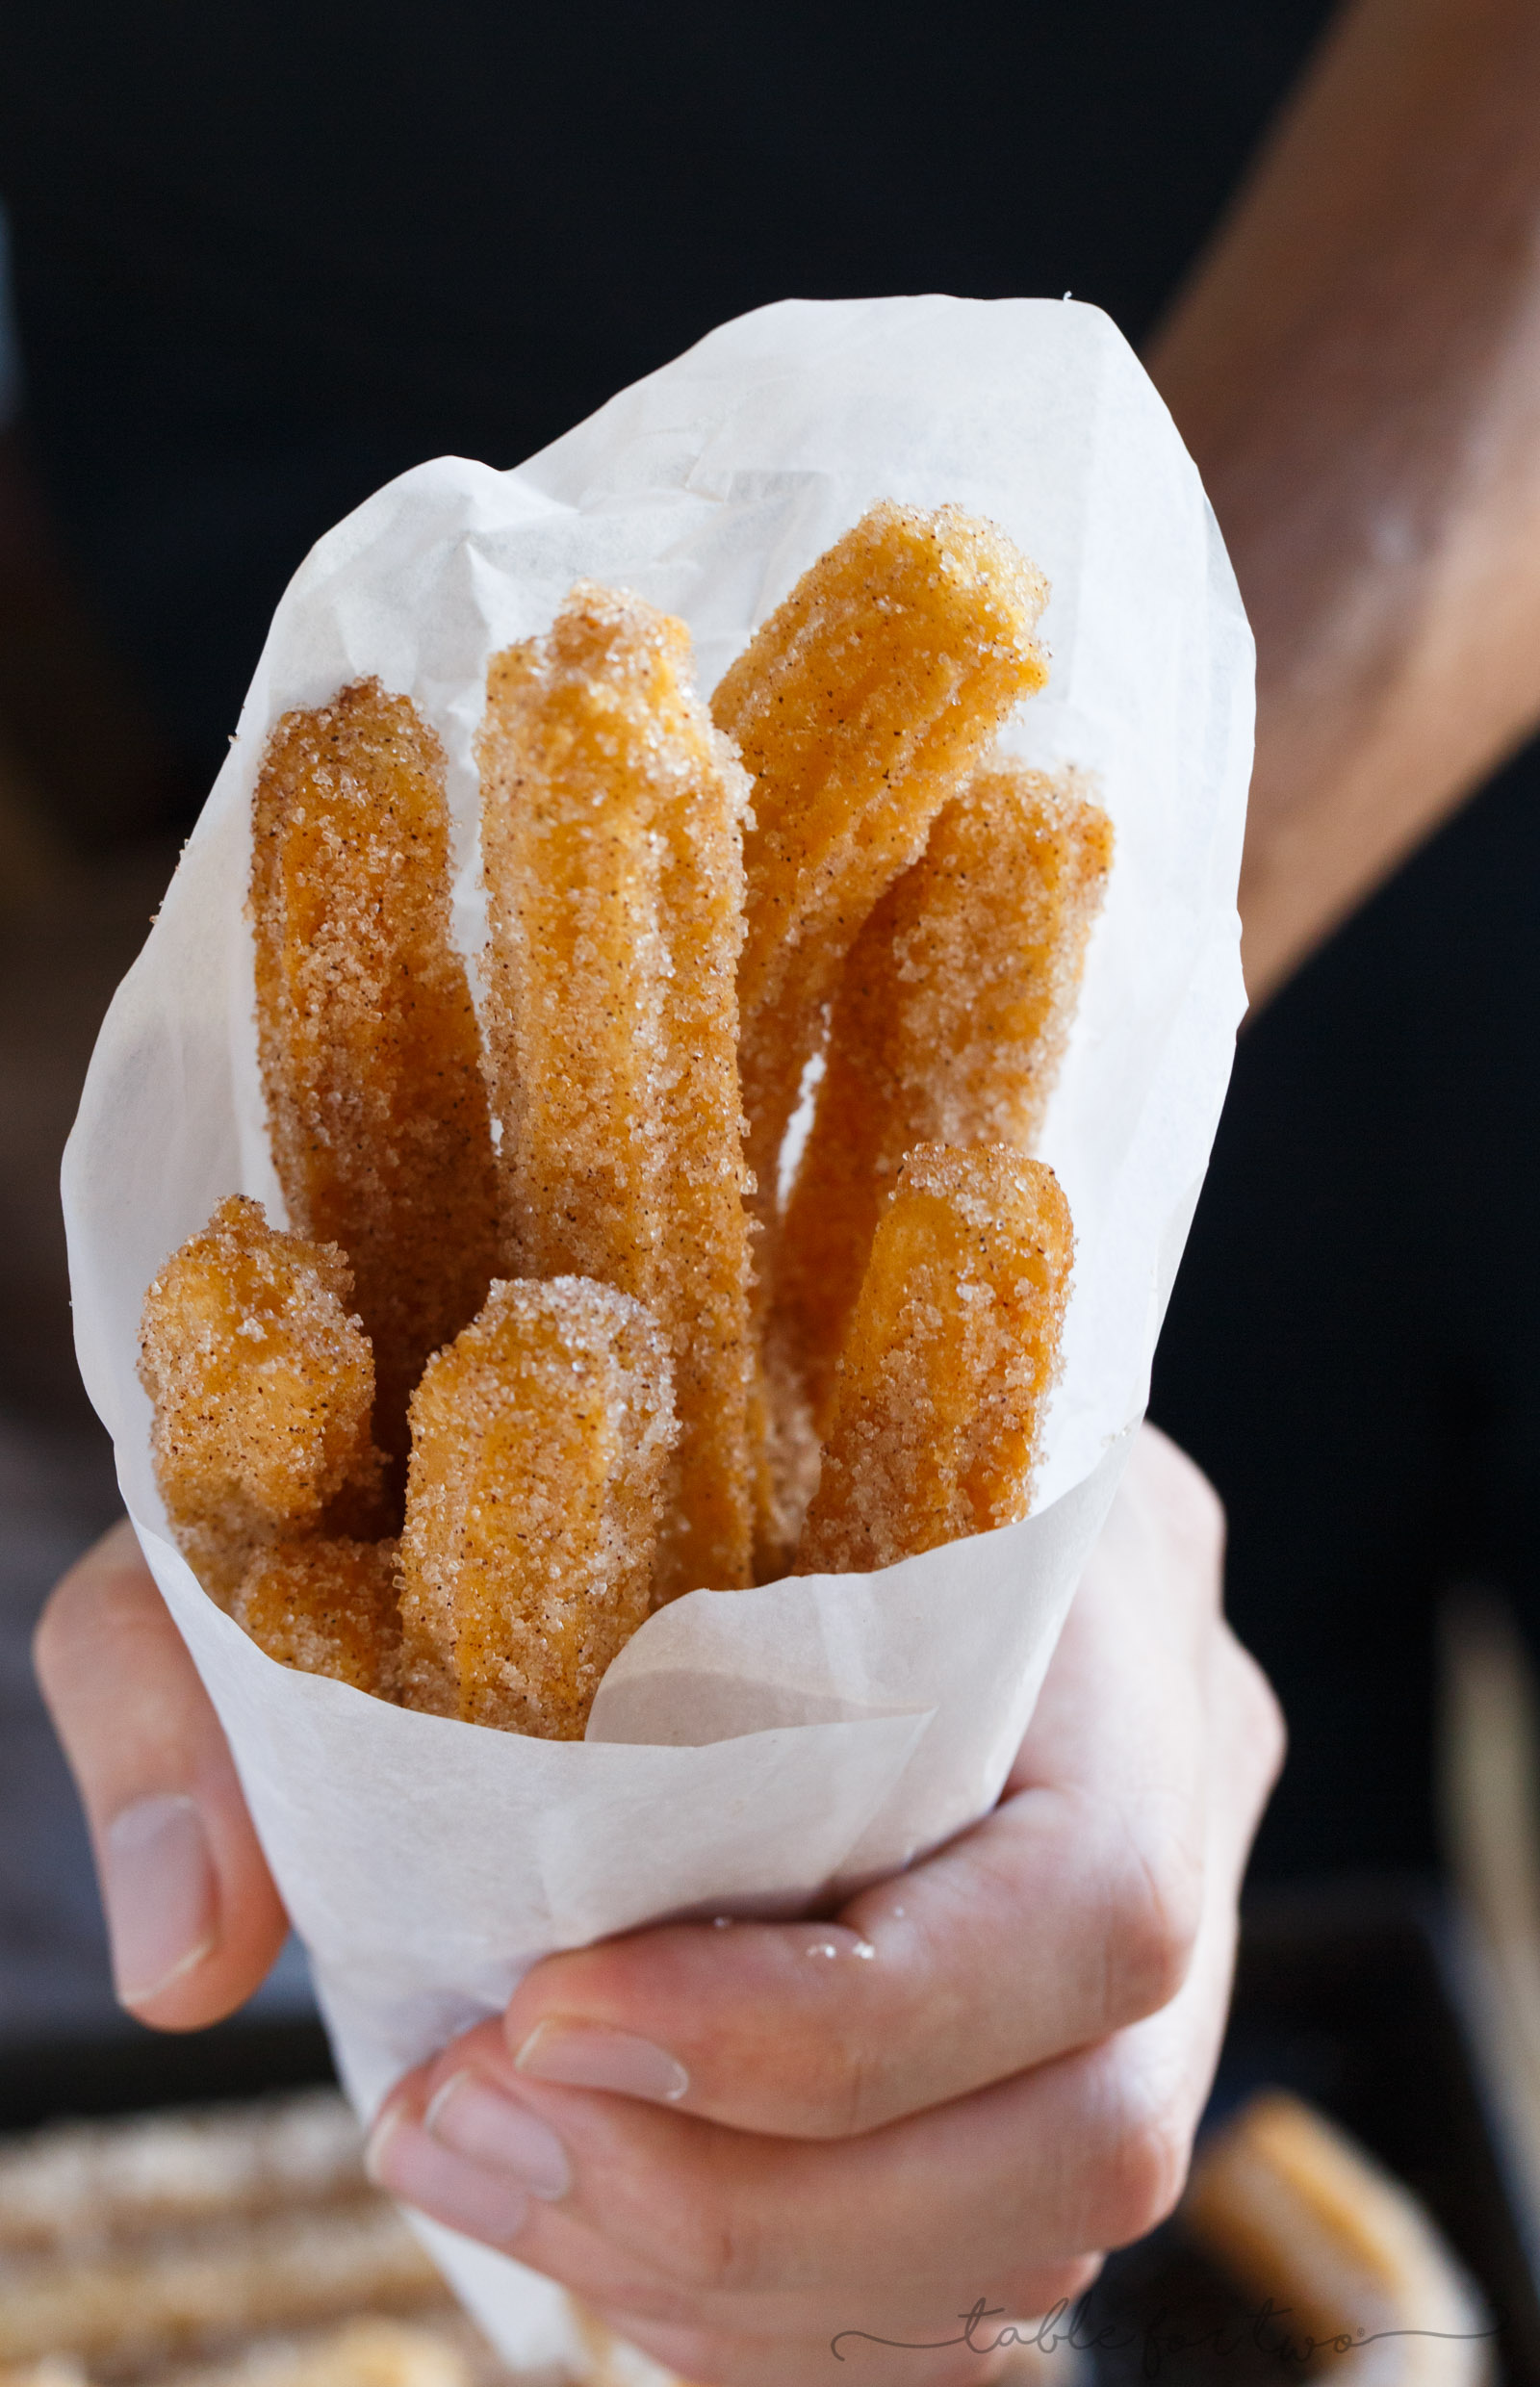 Making homemade Mexican churros is easier than you think! These cinnamon sugary fried dough of goodness will transport you right to Mexico without the cost of airfare ;)